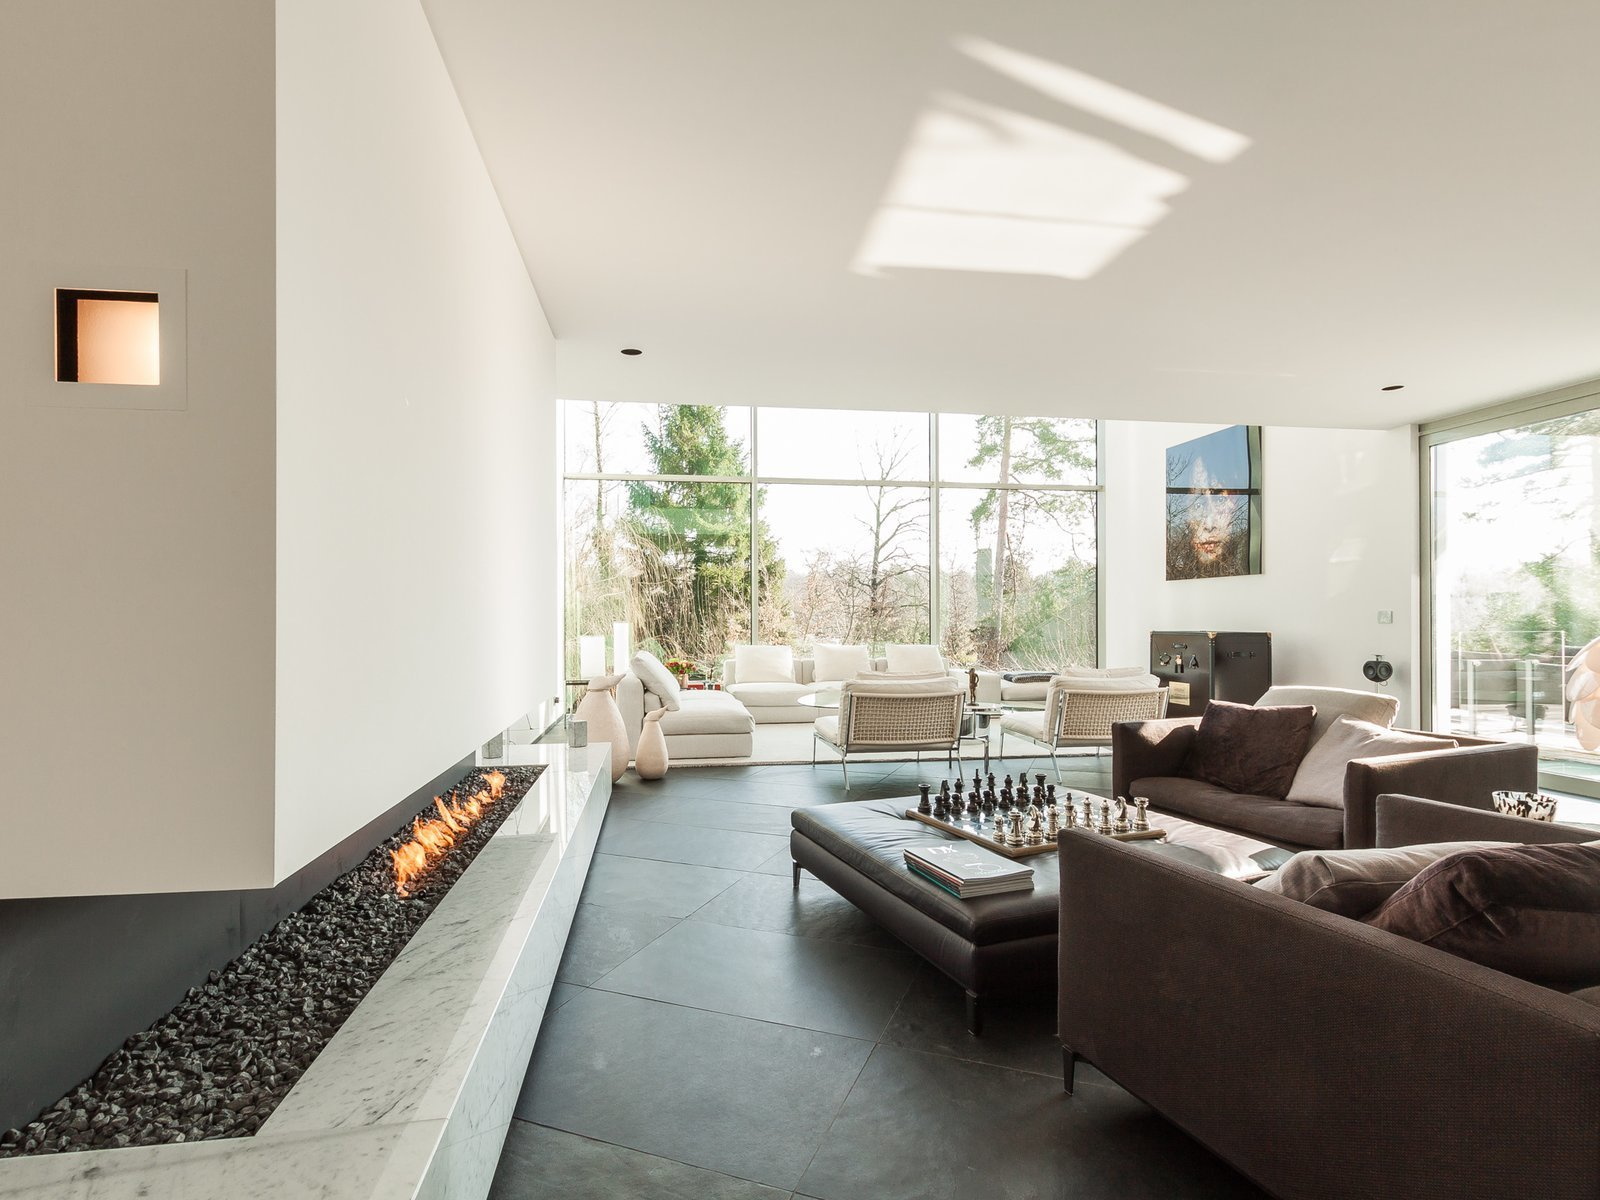 Photo 2 of 10 in 10 Modern Fireplaces That Make For Inviting ...